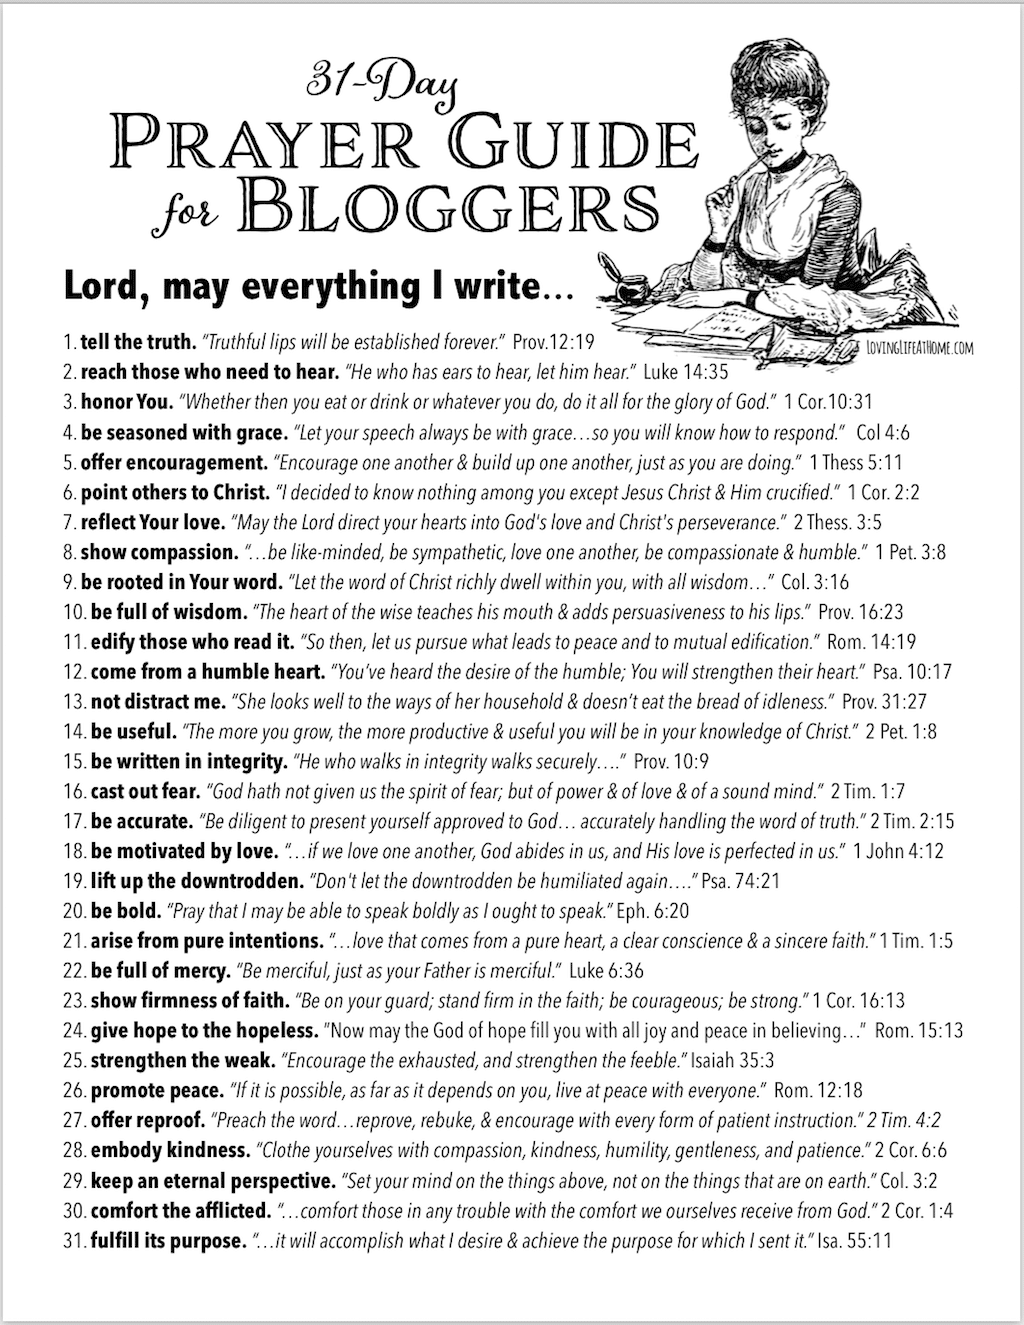 Free Printable 31-Day Blogger's Prayer Guide